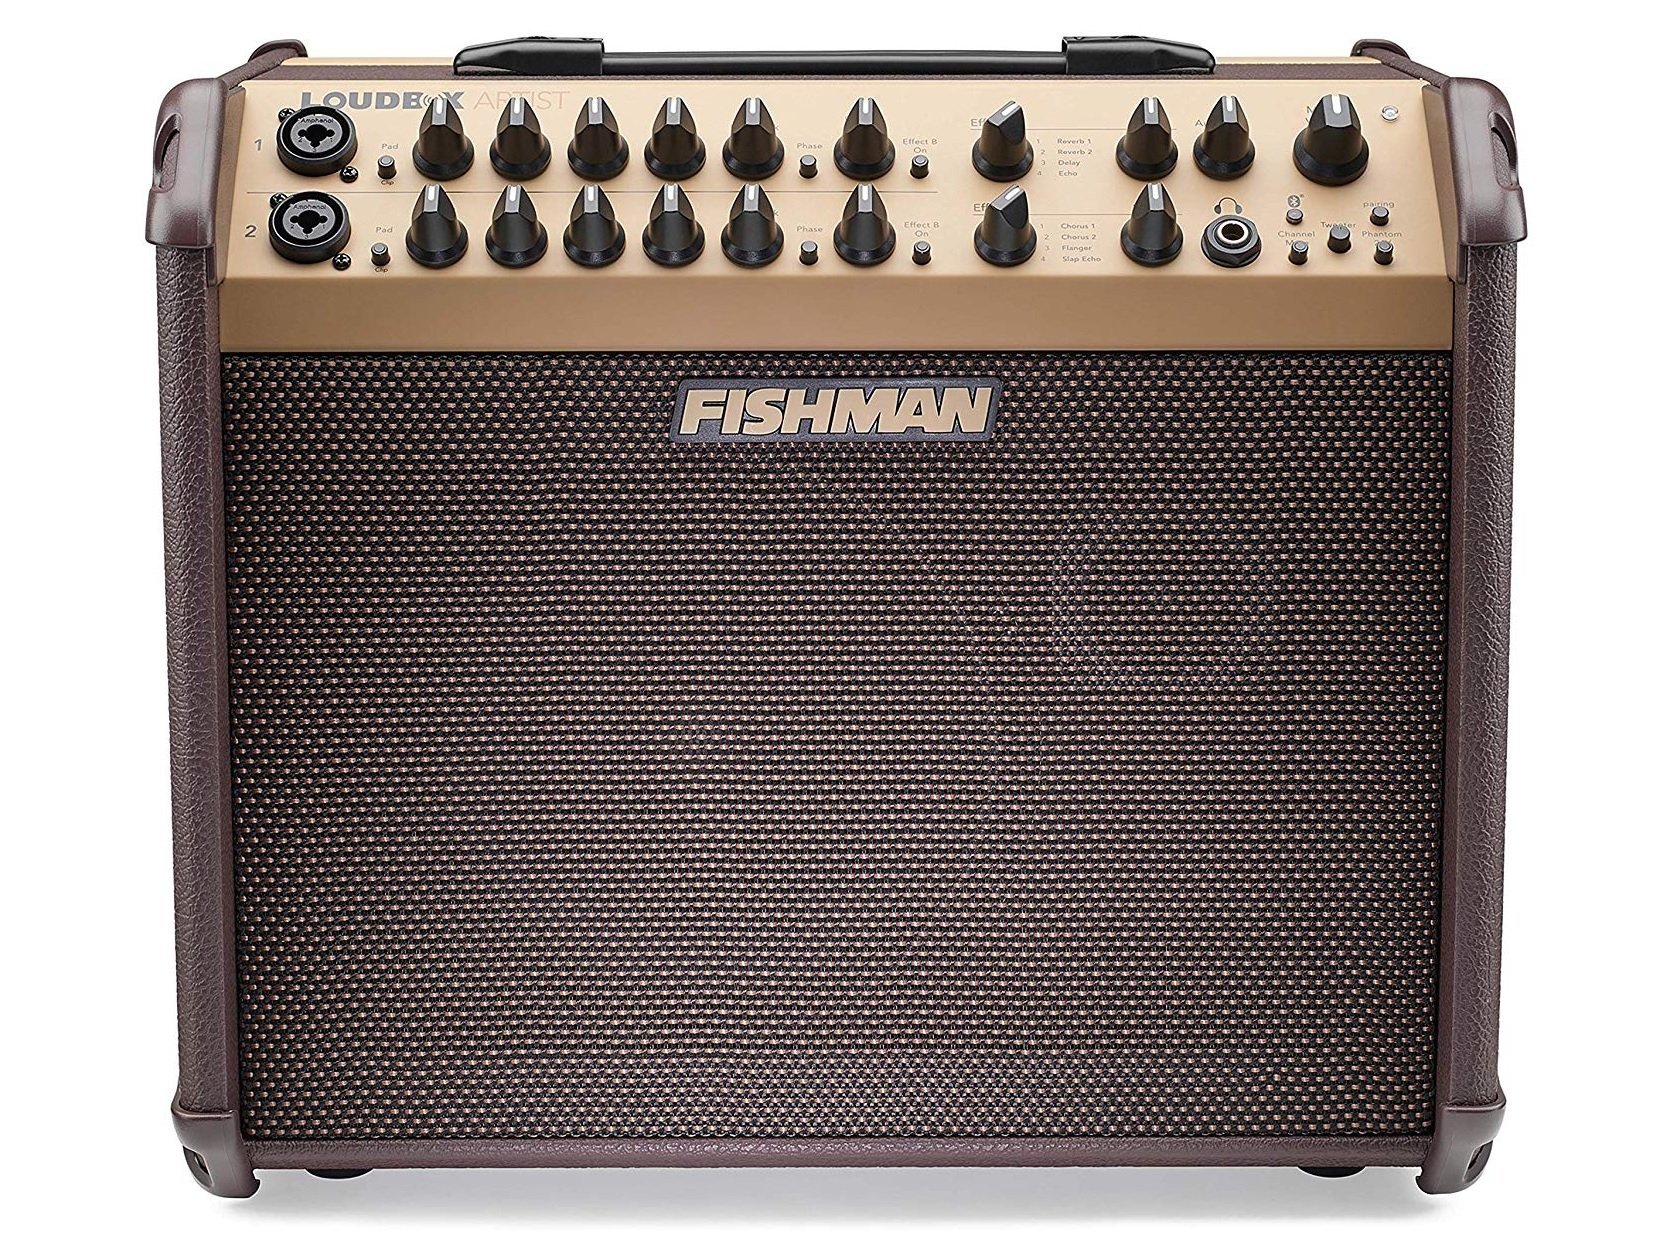 Fishman Loudbox Artist Acoustic Amp with Bluetooth